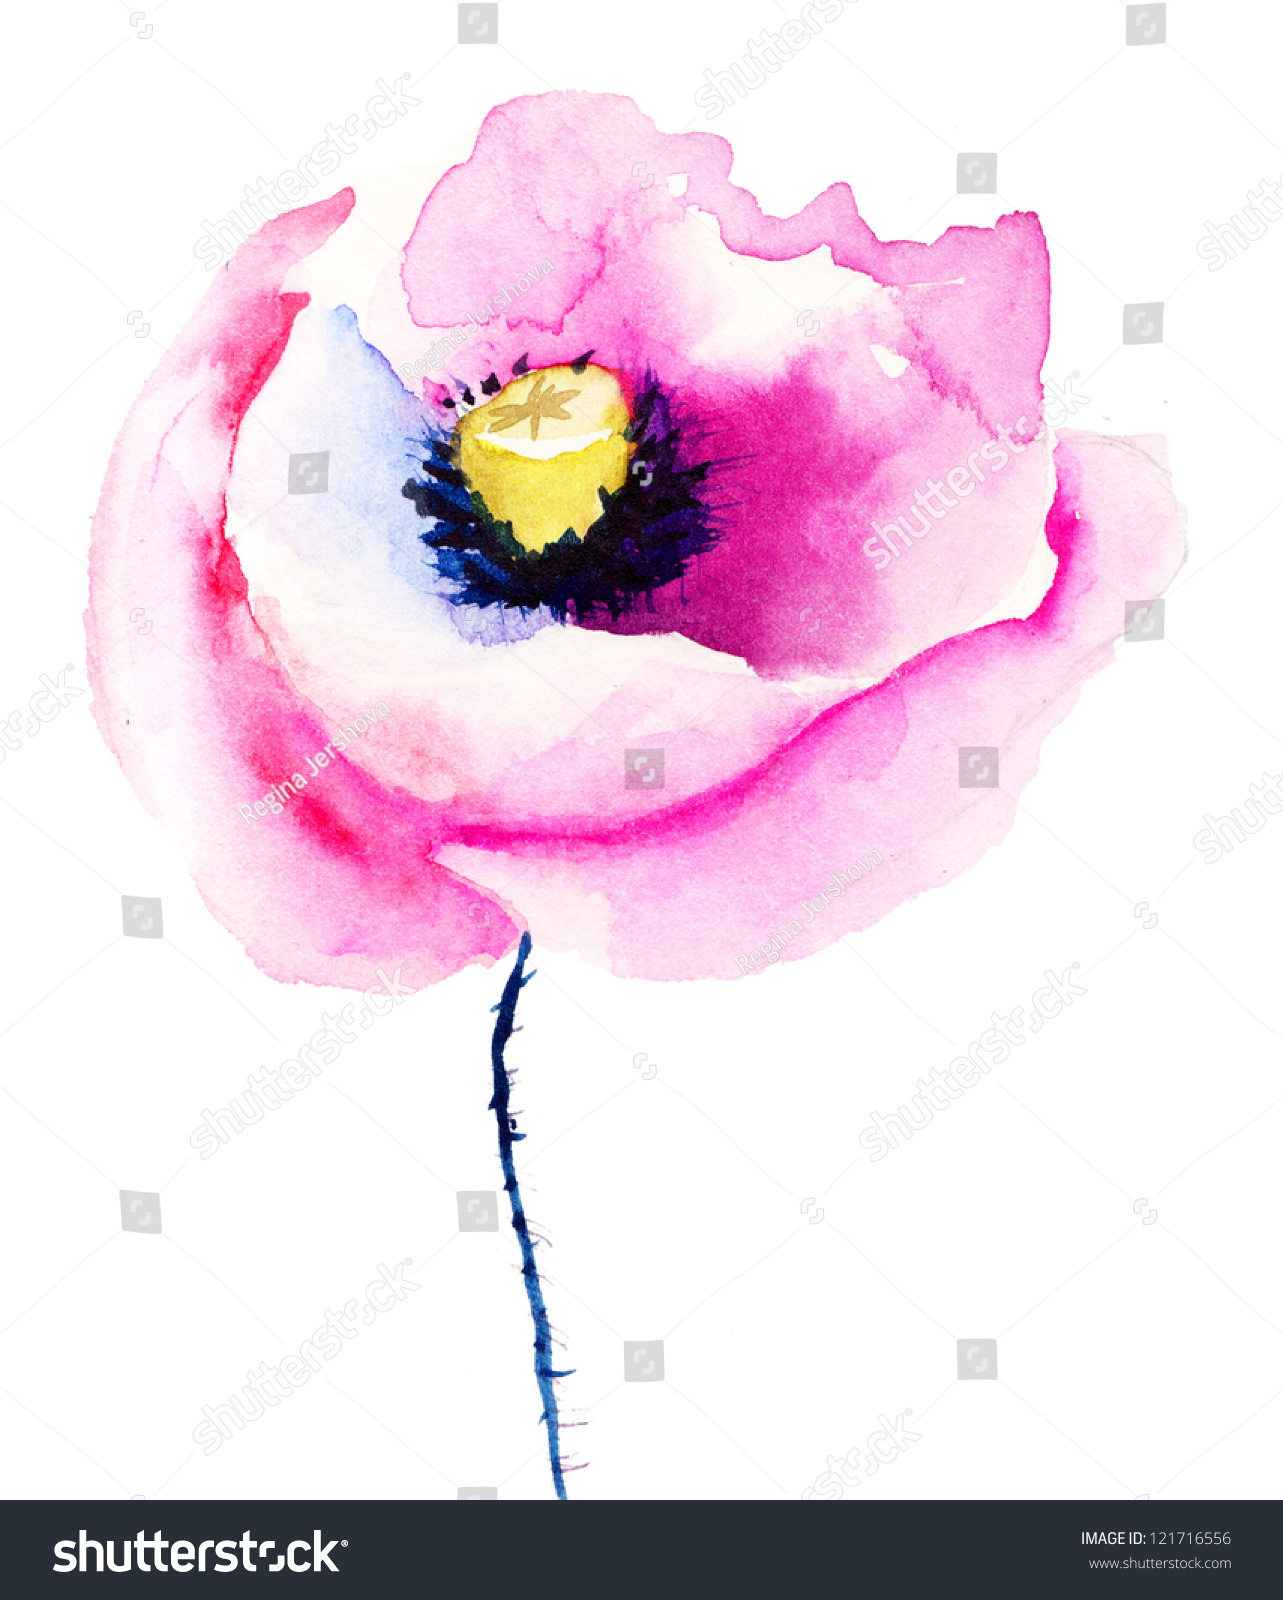 Watercolor Of Pink Poppies On Flowerbed Stock Illustration ... |Watercolor Poppies Pink